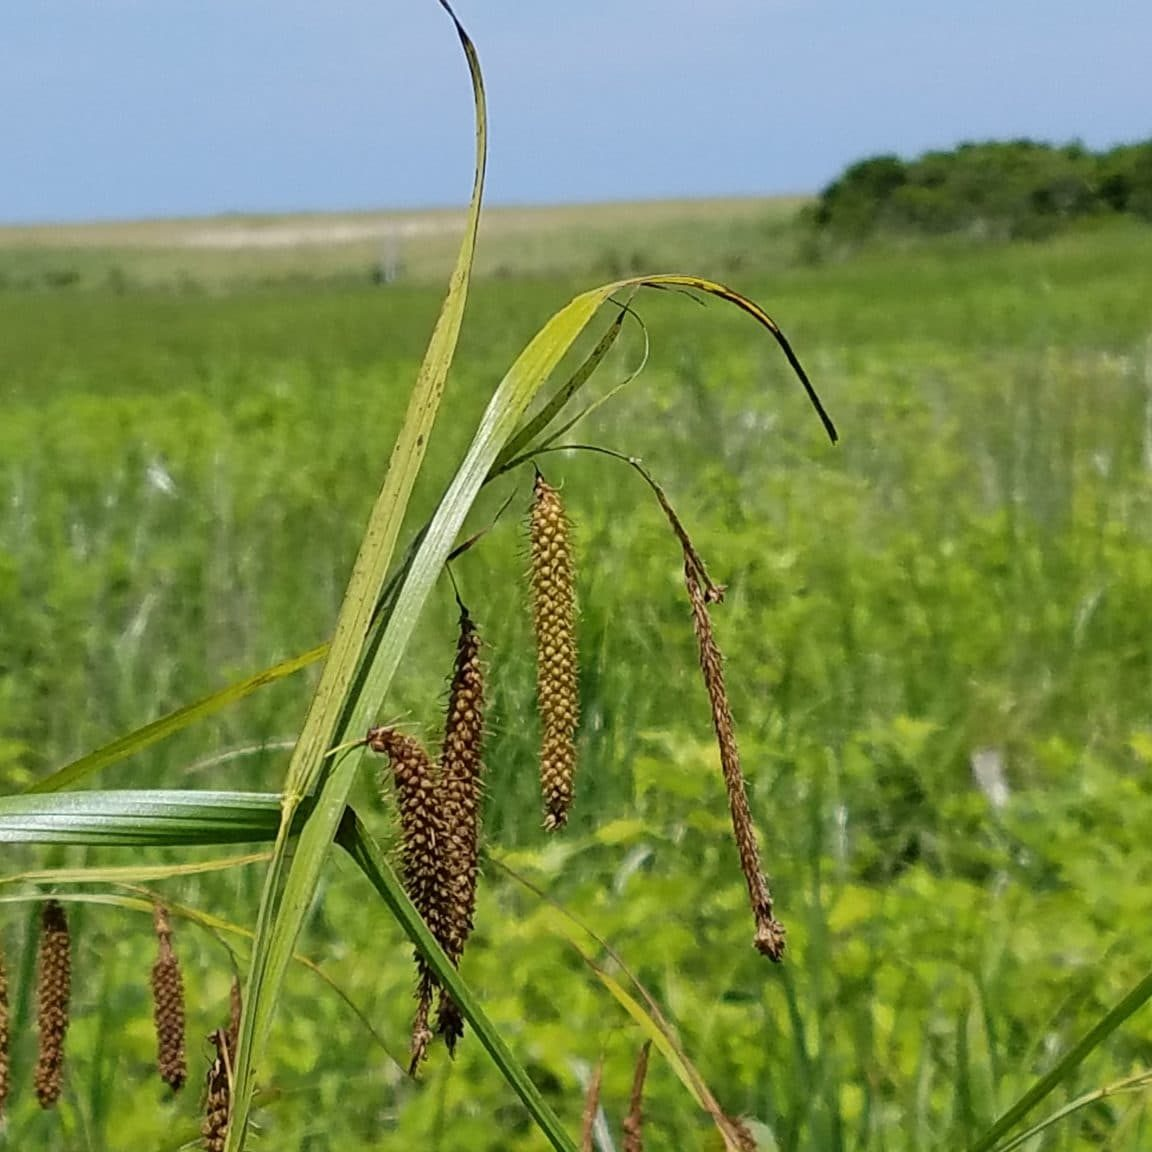 Fringed sedge <em>(Carex crinita)</em> - rare on Nantucket and last observed in 1908 by Bicknell